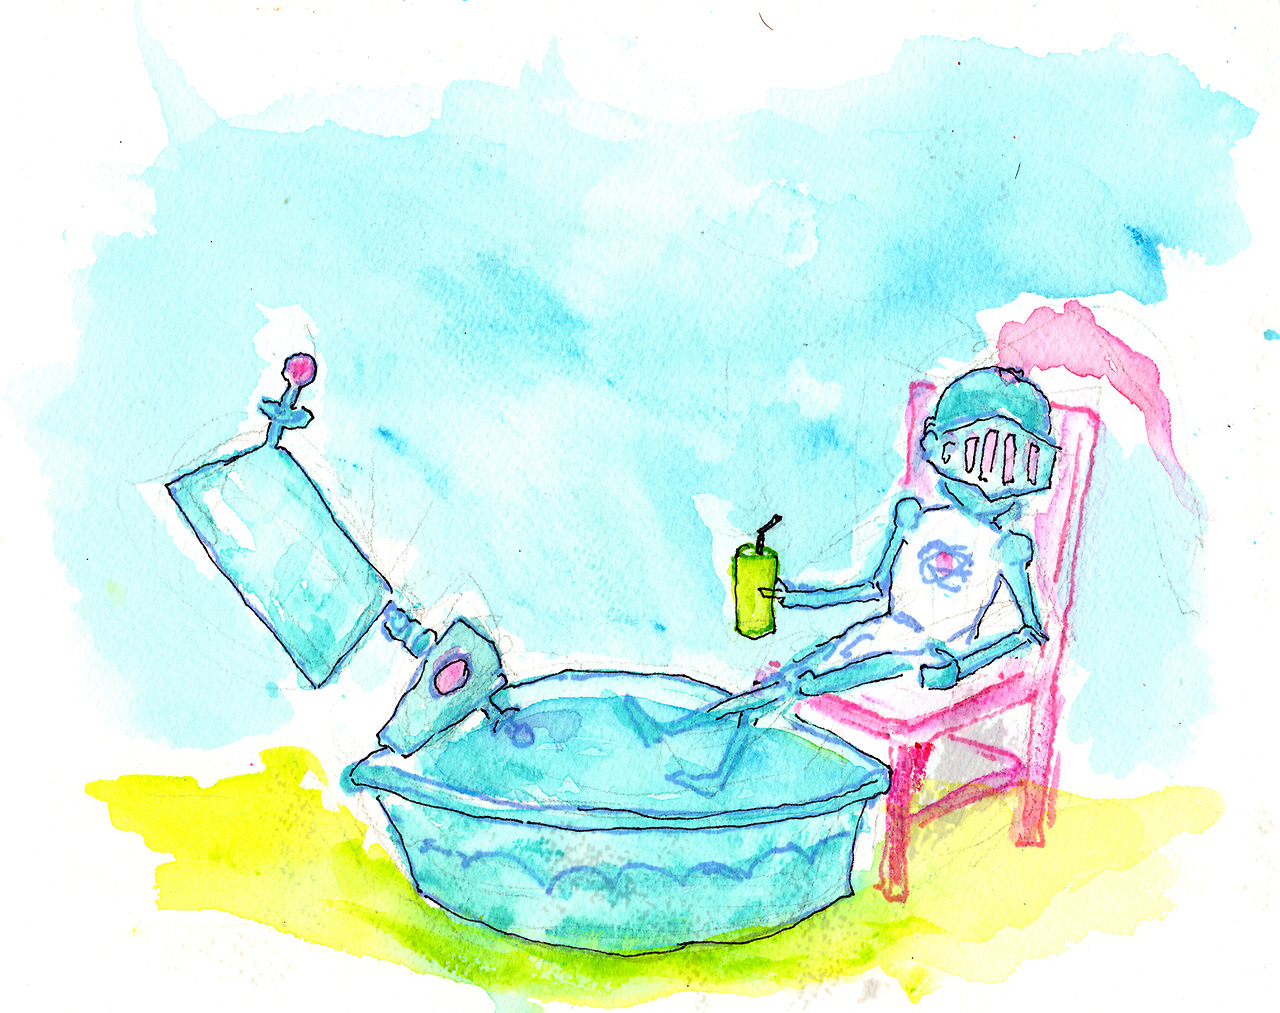 9/11/13 - Neutron and Atom Knight Stay Cool. It's going to be a warm one today. Someone buy me a kiddie pool. Or an air conditioner. Or a cold beverage.  Buy it here - http://taylorwinder.bigcartel.com Prints here - http://society6.com/taylorwinder